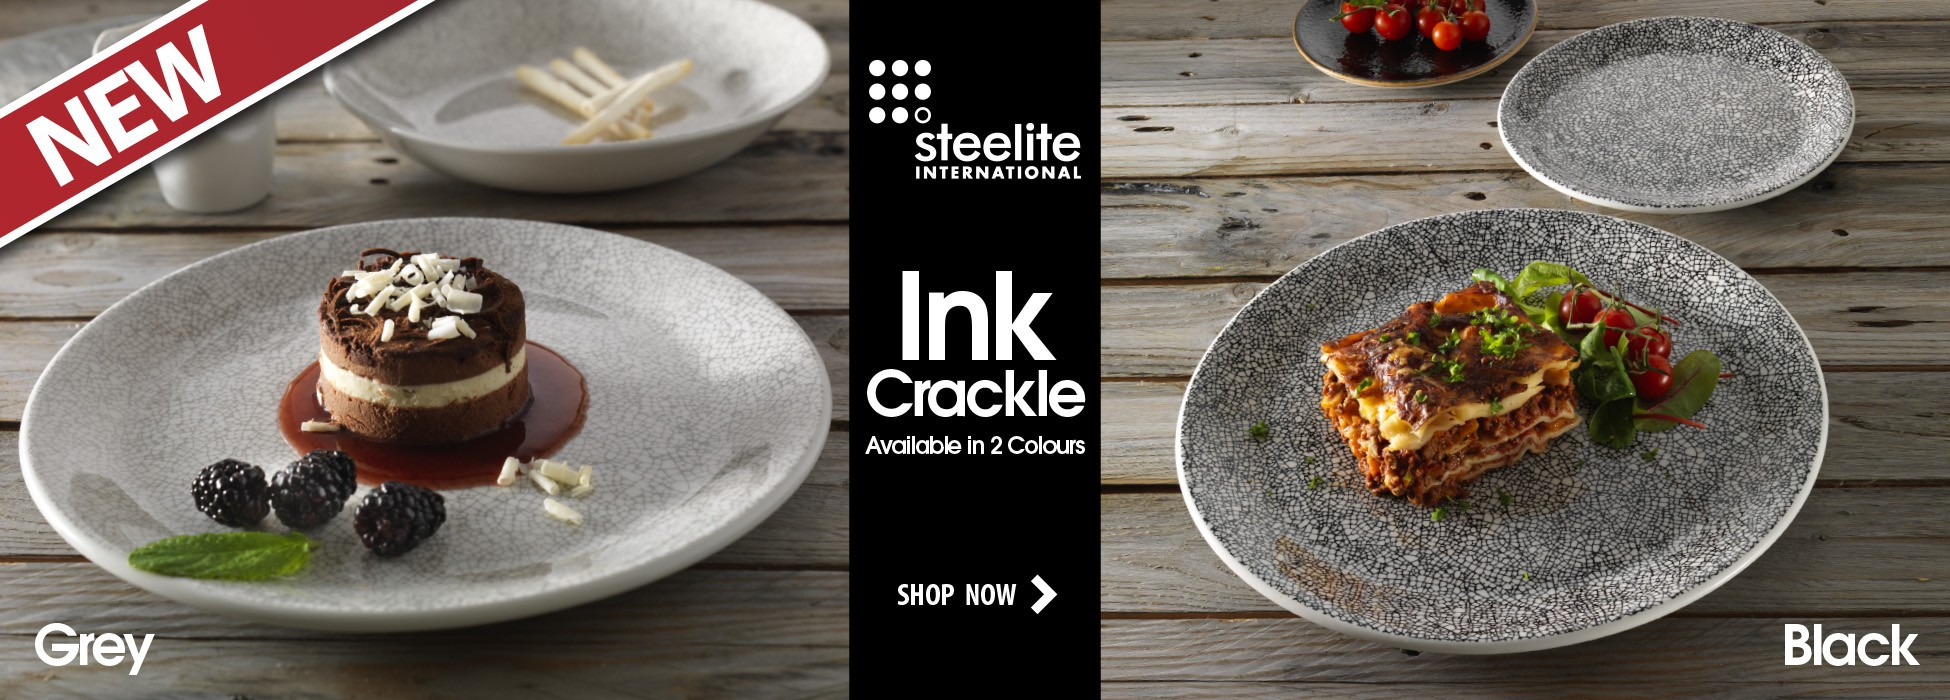 Steelite Ink Crackle